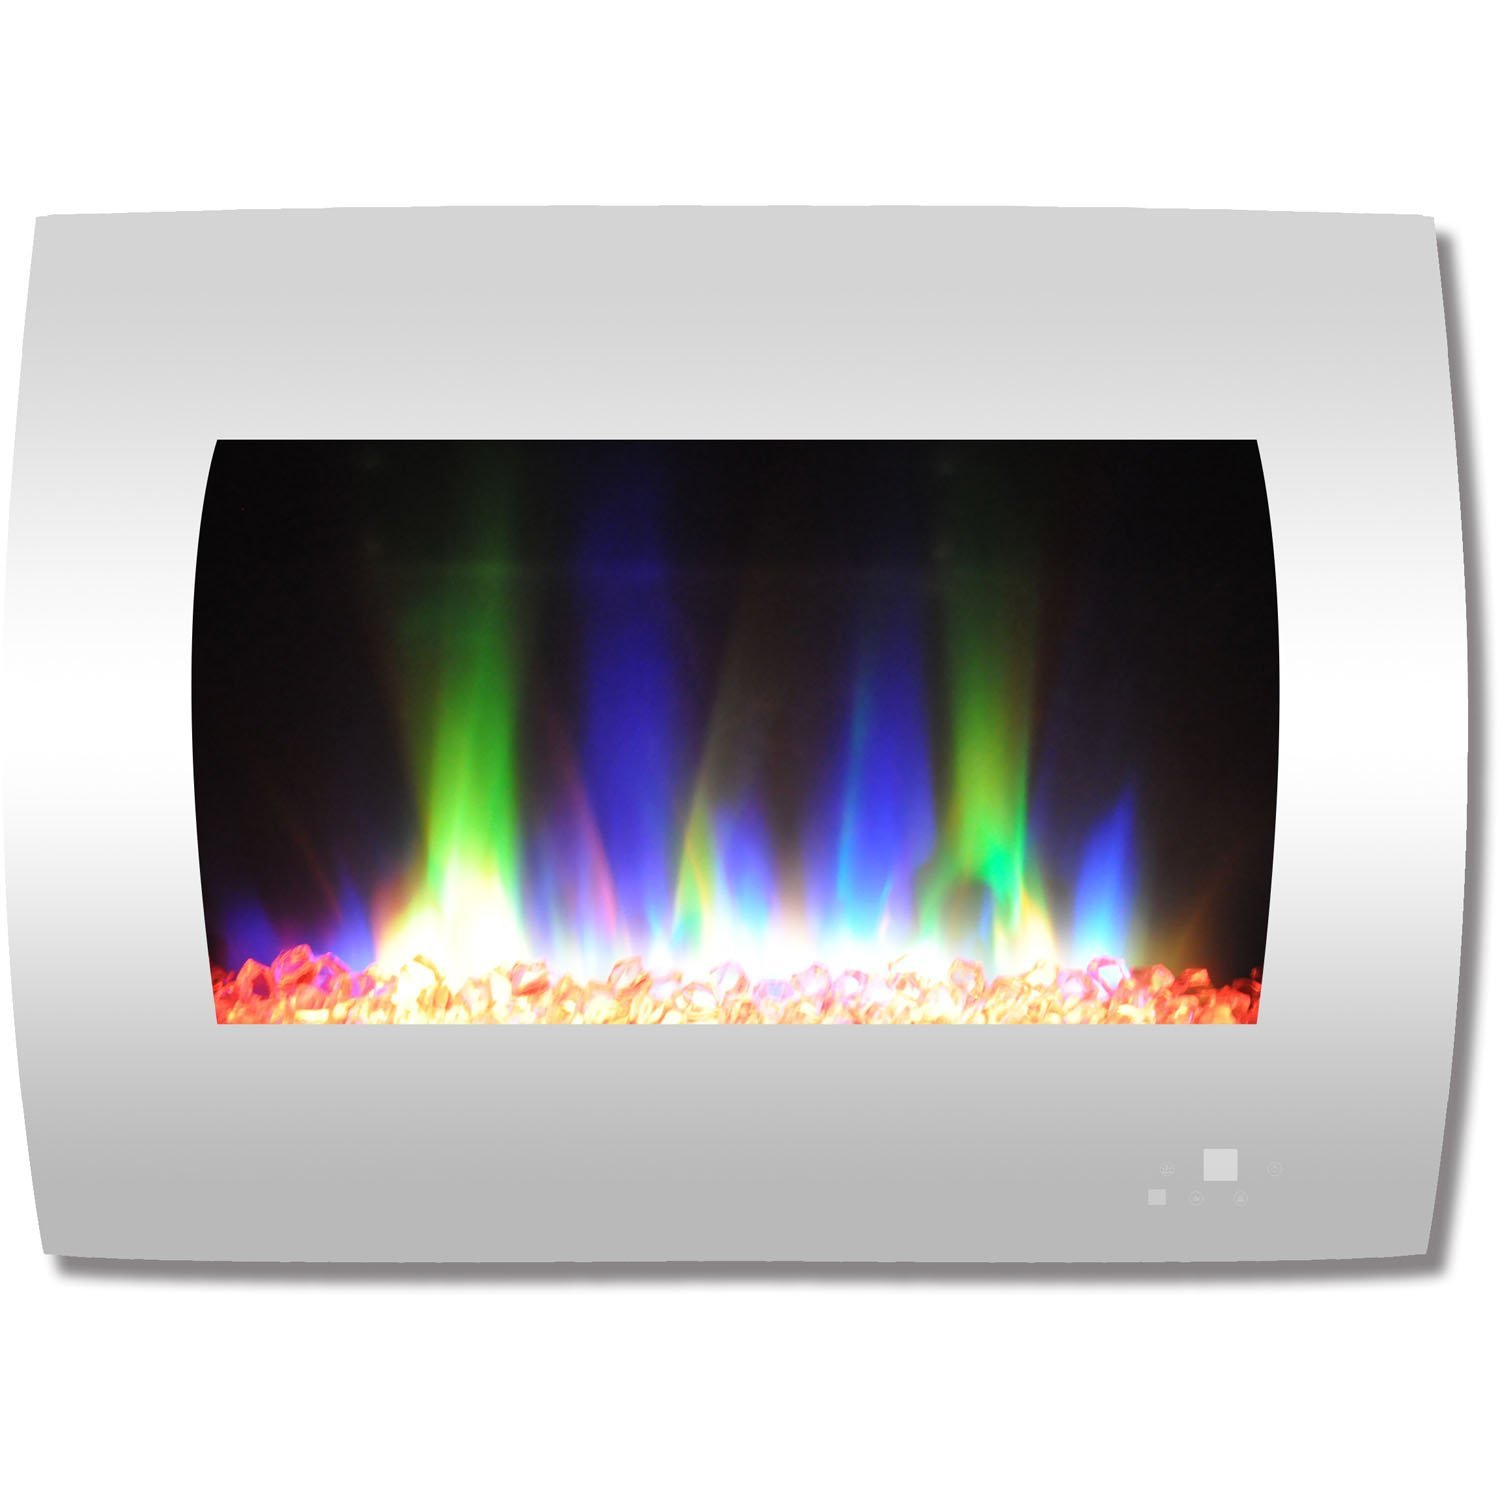 Cambridge CAM26WMEF-1WHT 26 In. Curved Wall-Mount Electric Fireplace in White with Multi-Color Flames and Crystal Rock Display